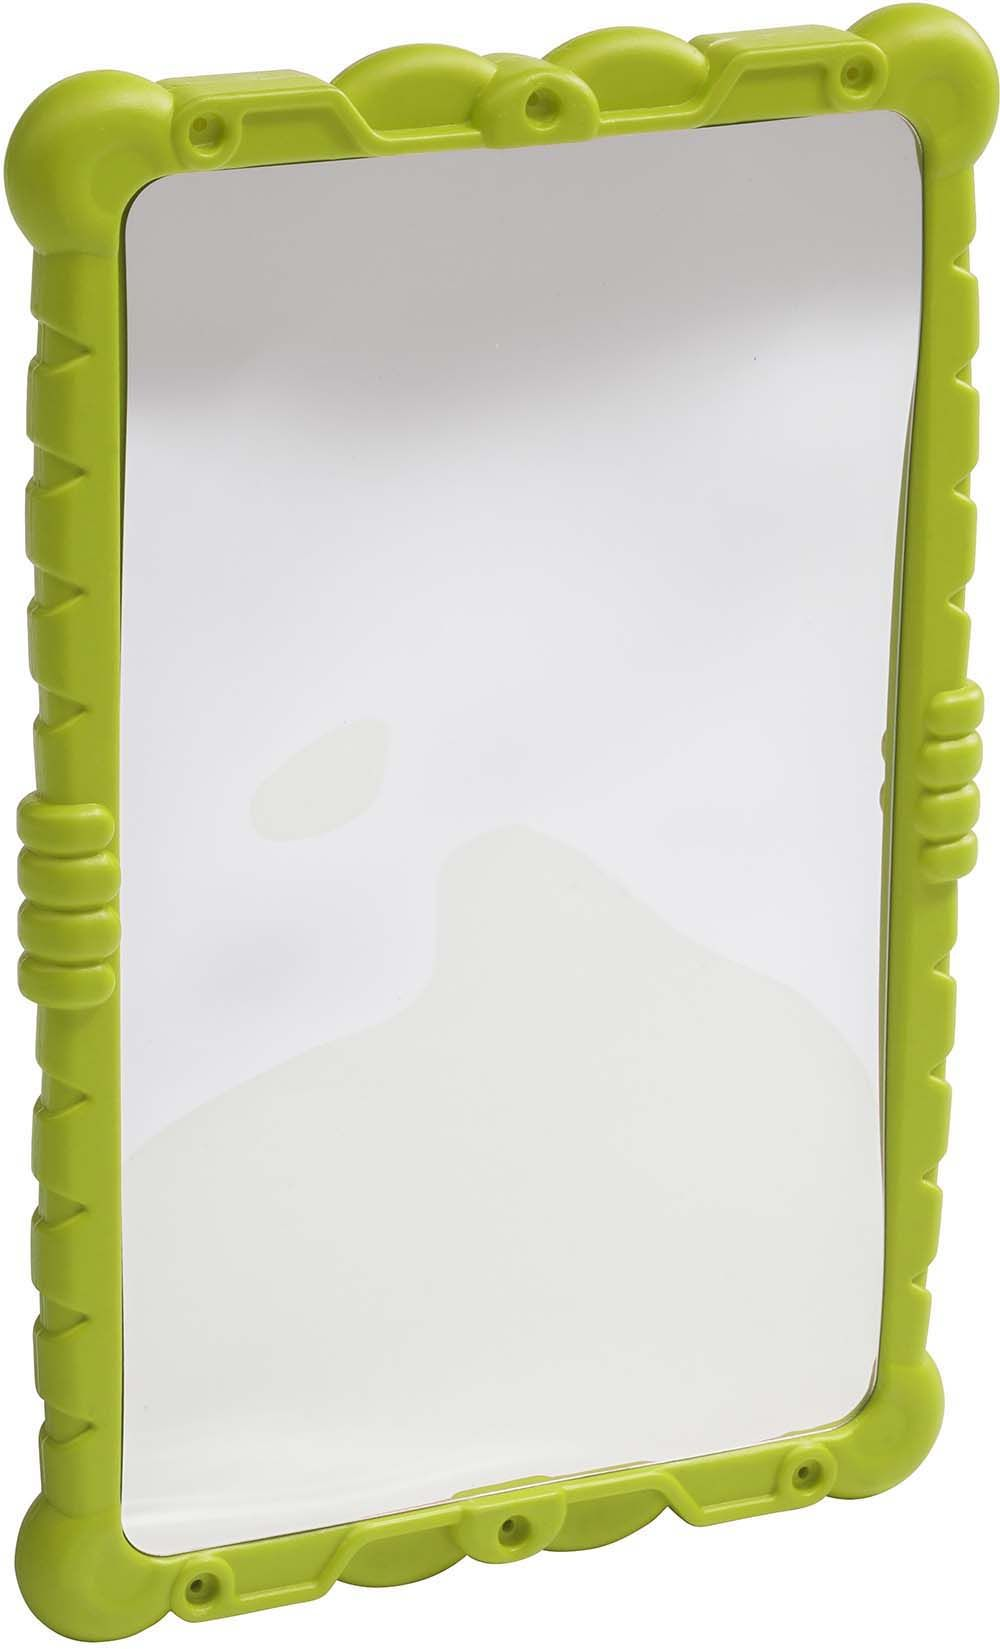 Miroir d formant haha ebay for Miroir deformant